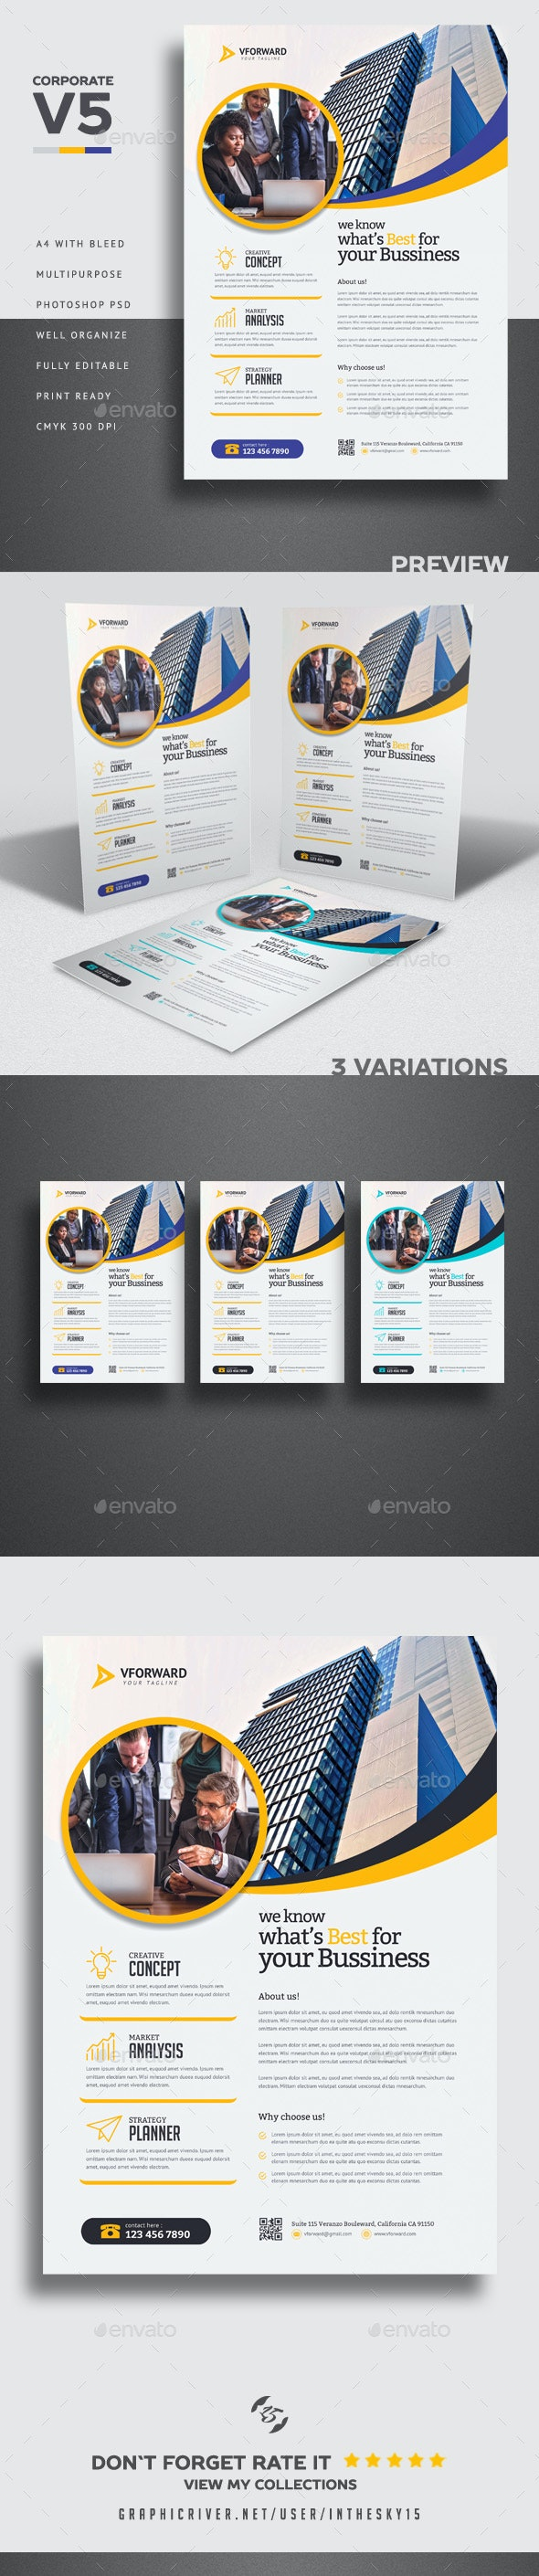 Corporate V5 Flyer - Corporate Flyers